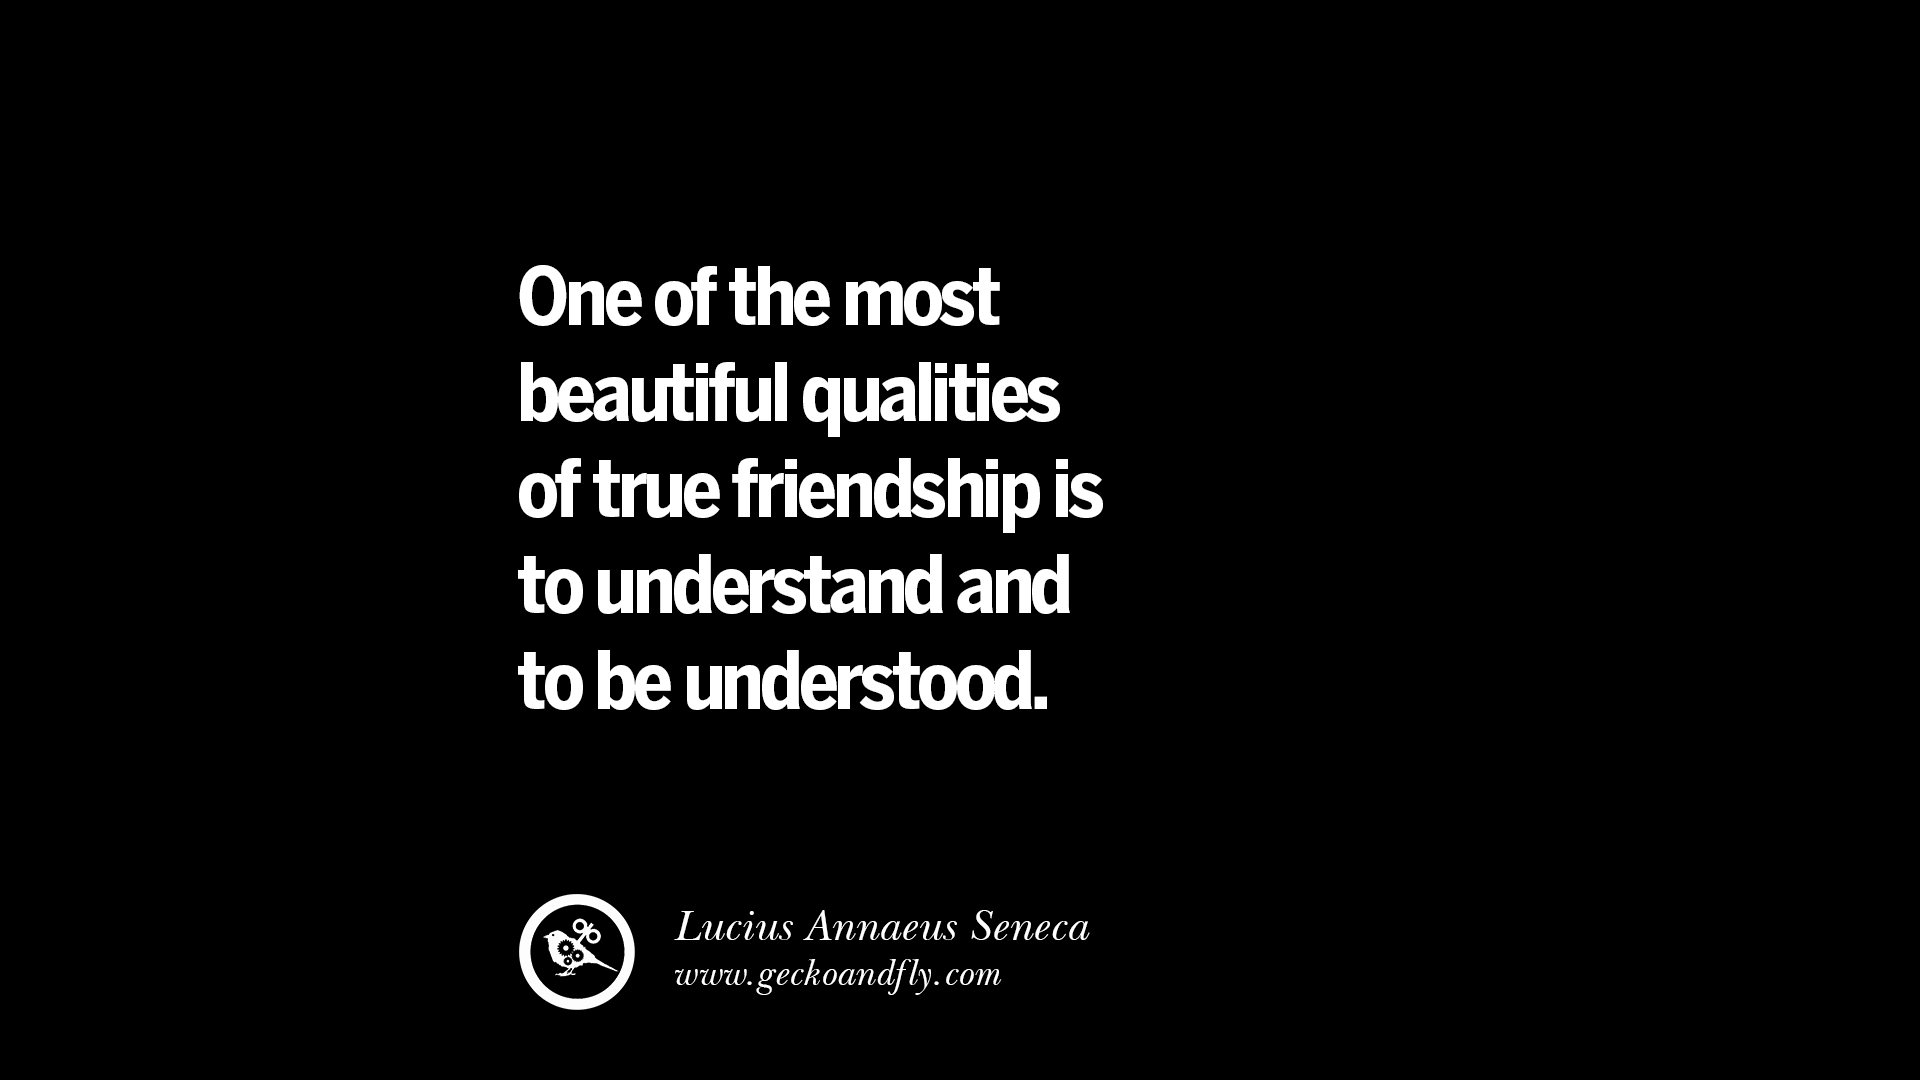 Good Quotes About Love And Friendship Prepossessing 20 Amazing Quotes About Friendship Love And Friends  Geckoandfly 2018